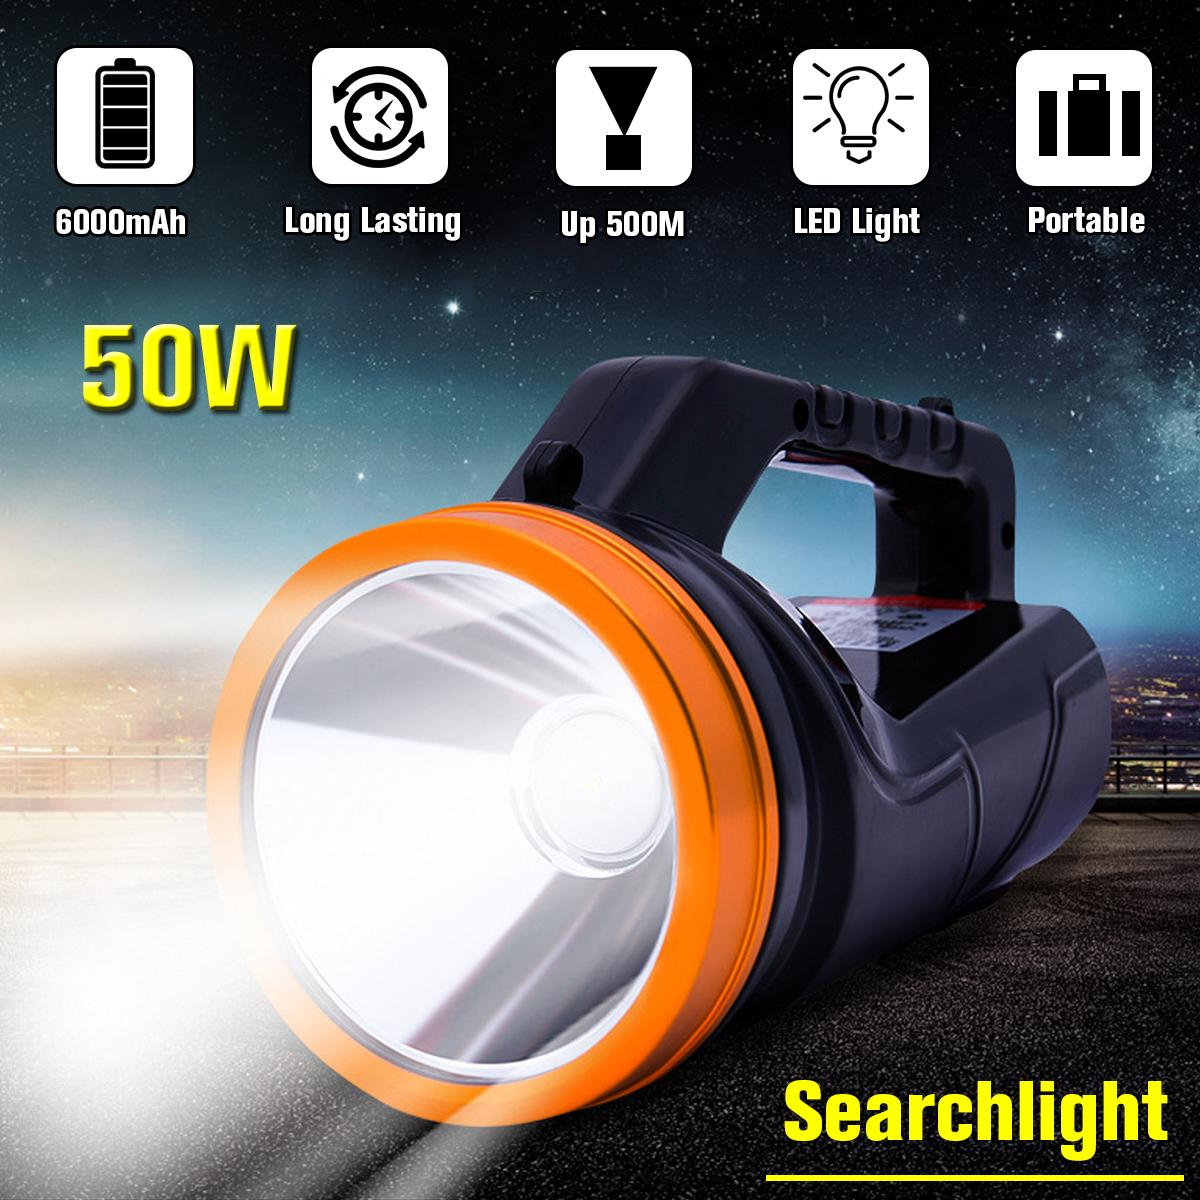 Searchlight Bright Handheld Portable Searchlight LED Rechargeable Flashlight QK